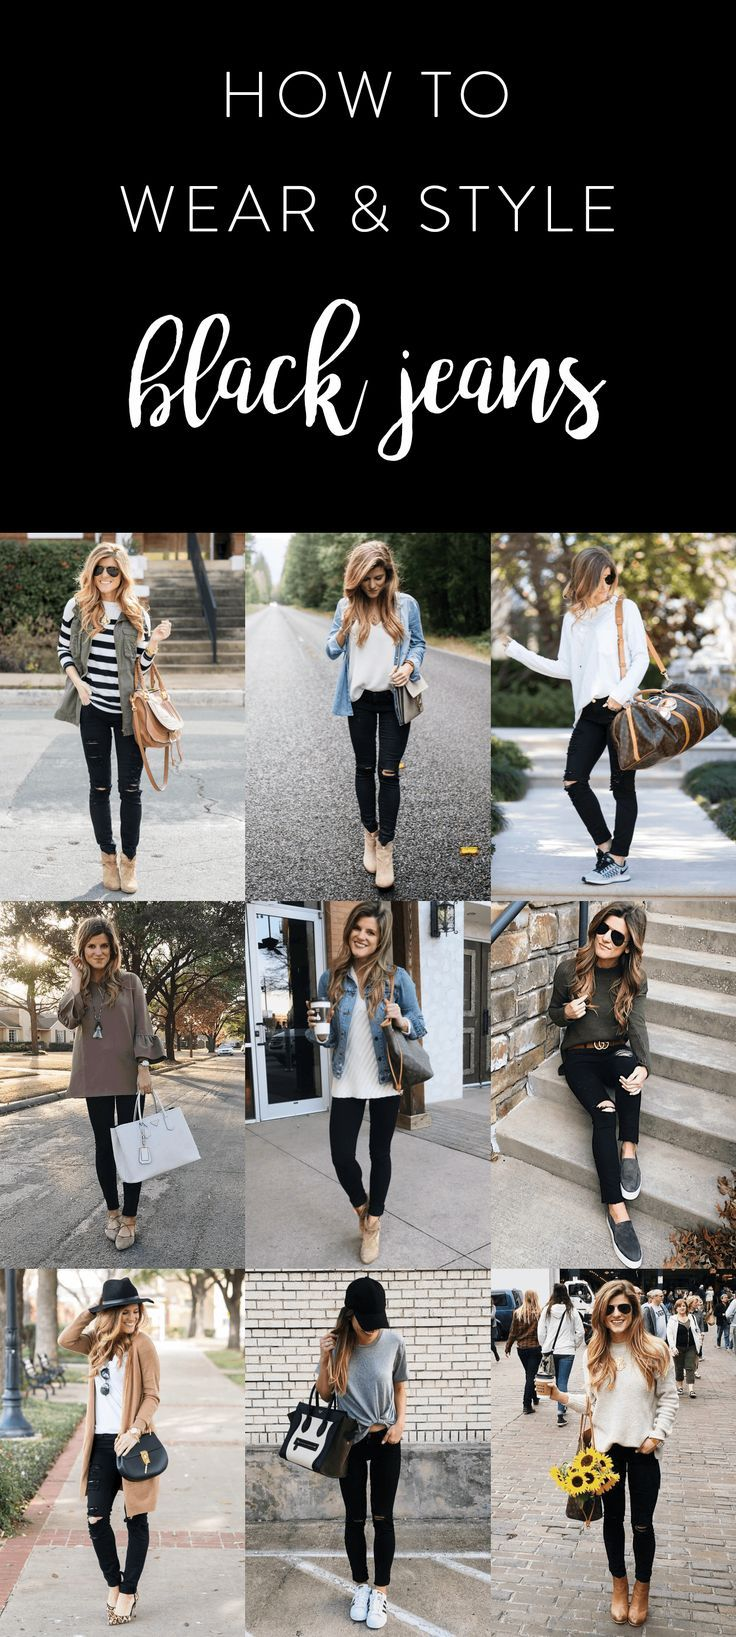 4529aa1ef1c6 What to wear with black jeans - 30+ Black Jeans Outfit Ideas